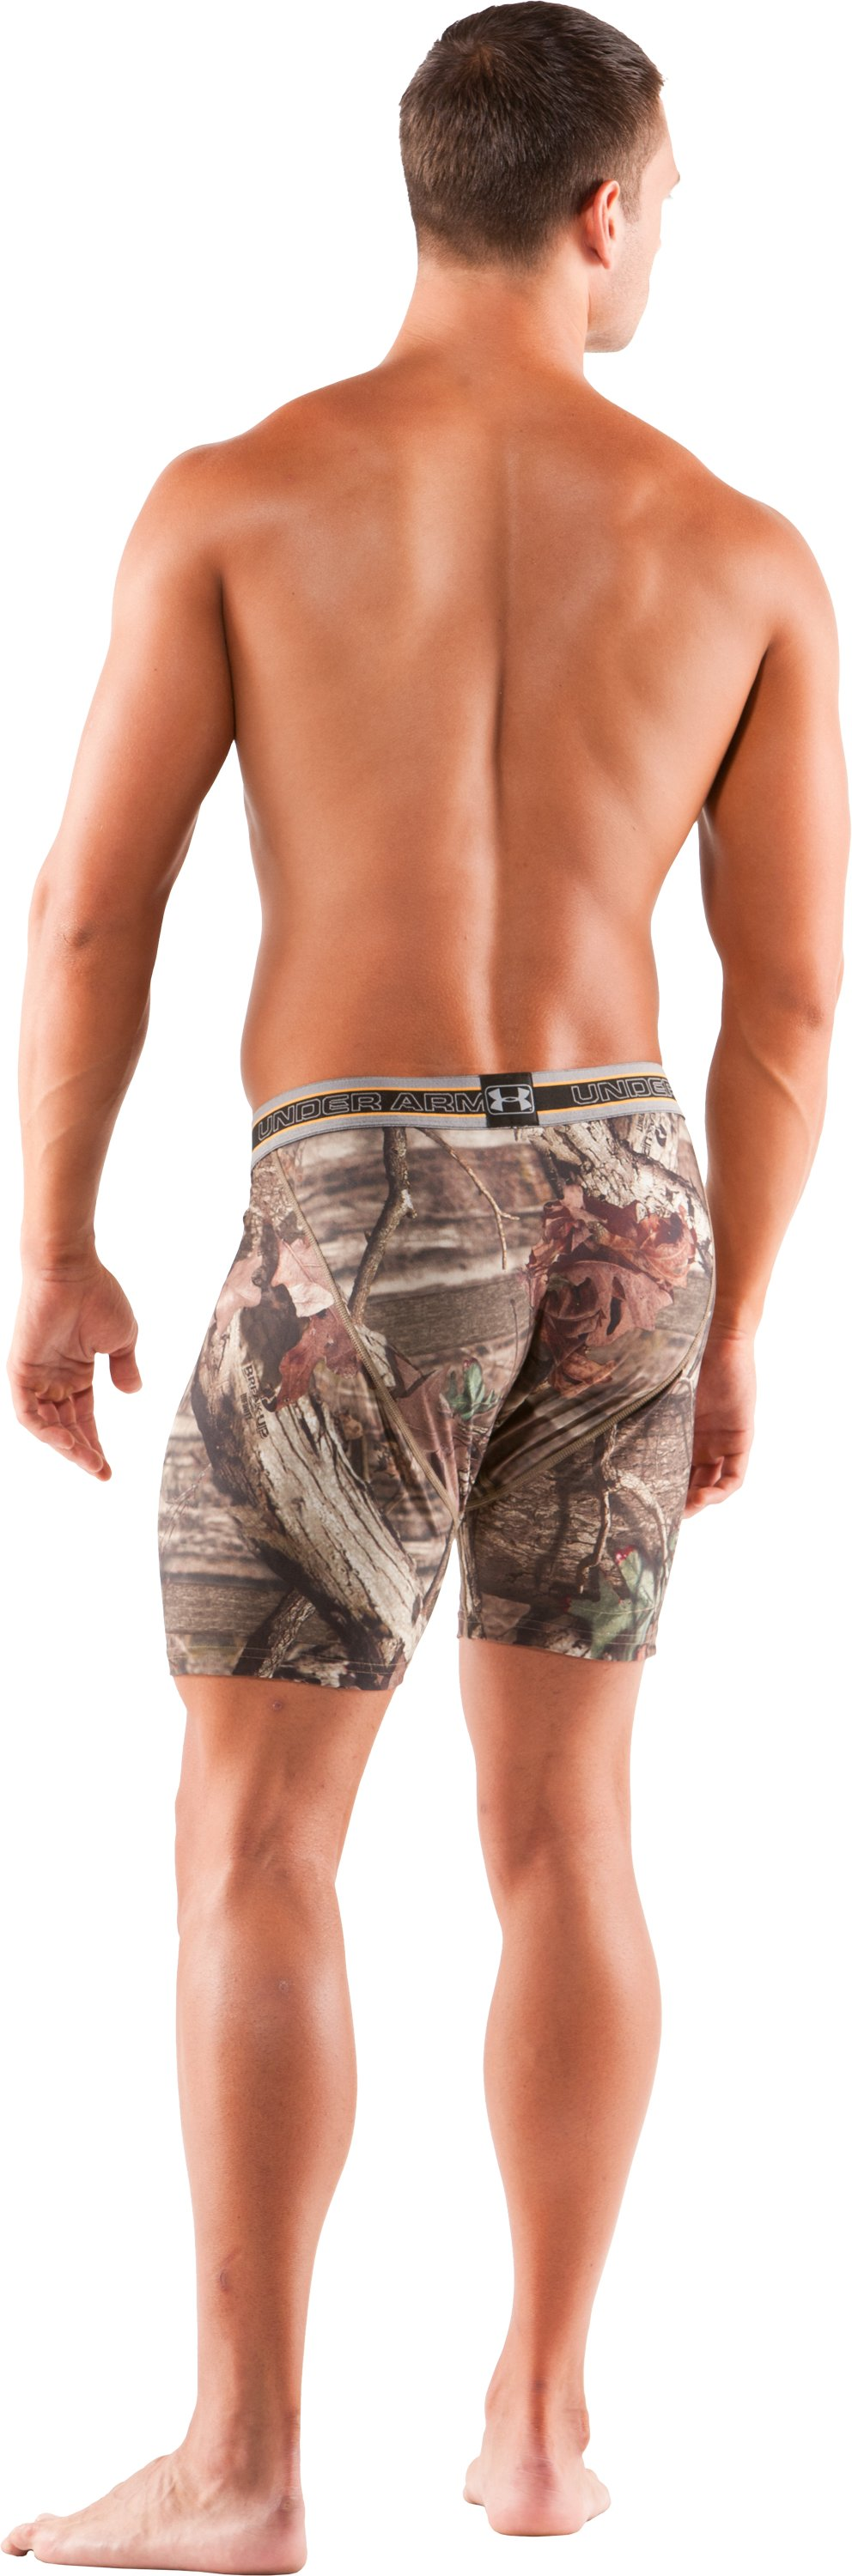 Men's Camo Boxerjock® Boxer Briefs, Mossy Oak Break-Up Infinity, Back